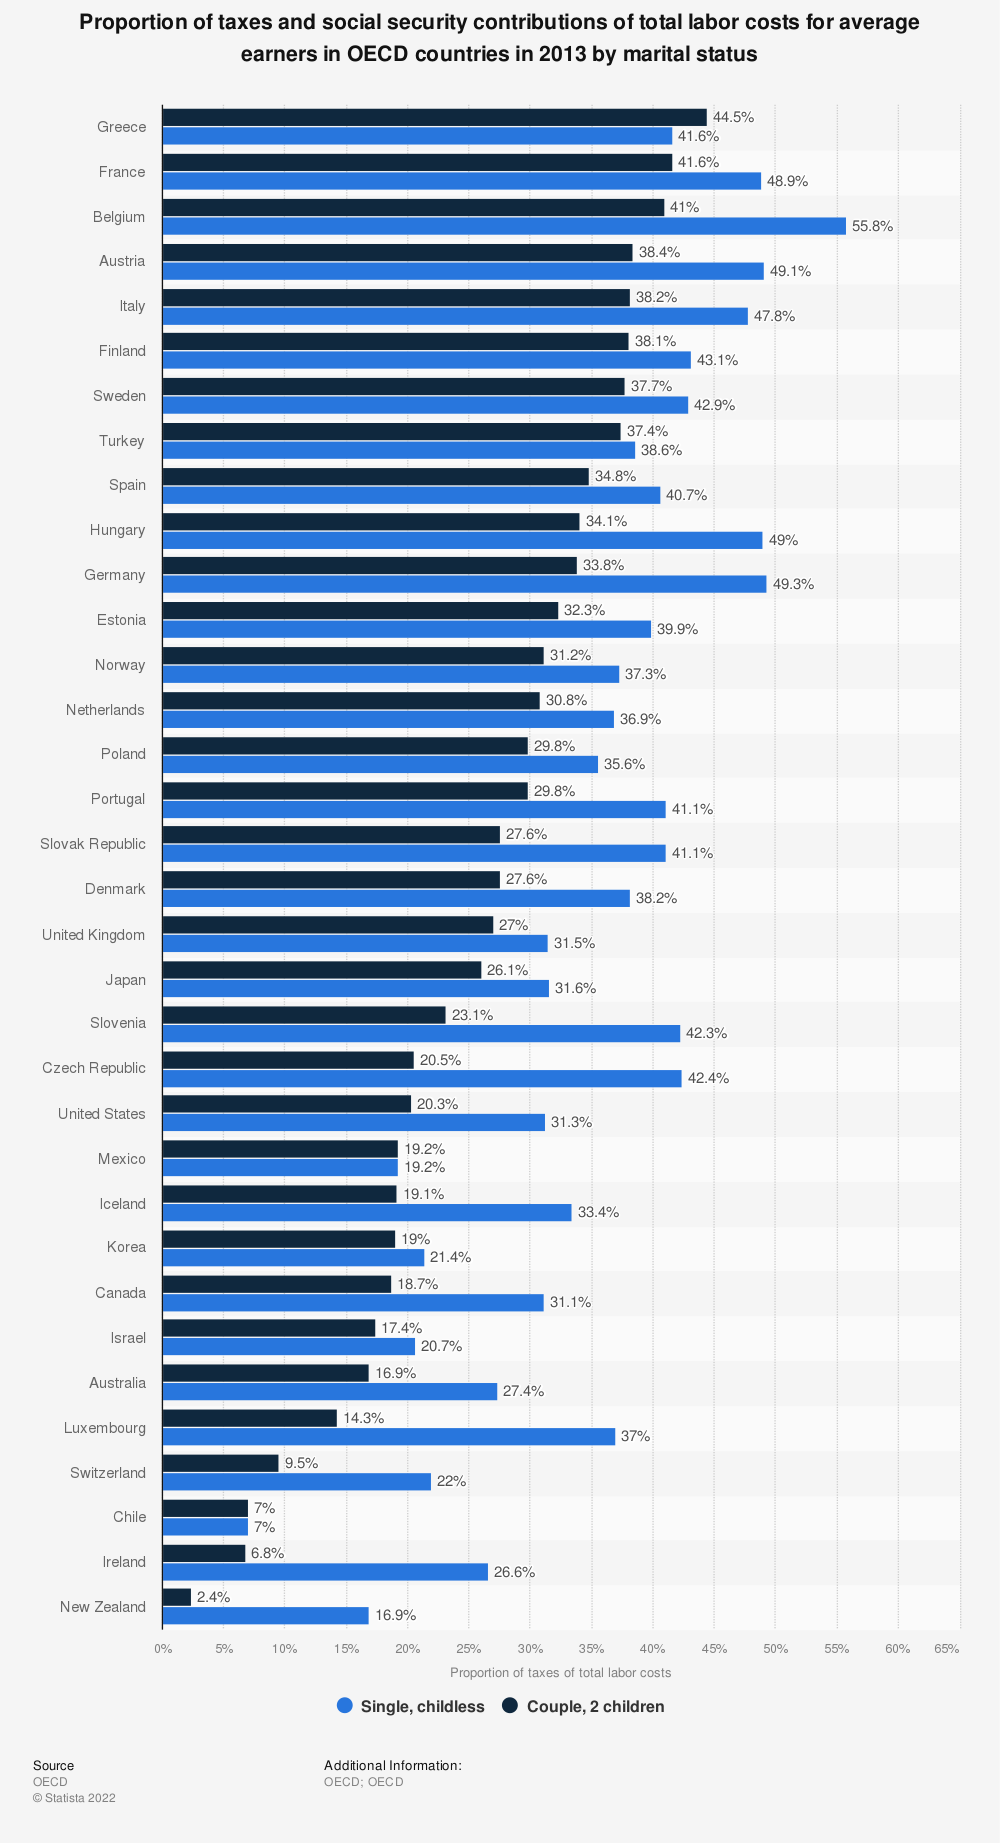 Statistic: Proportion of taxes and social security contributions of total labor costs for average earners in OECD countries in 2013 by marital status | Statista